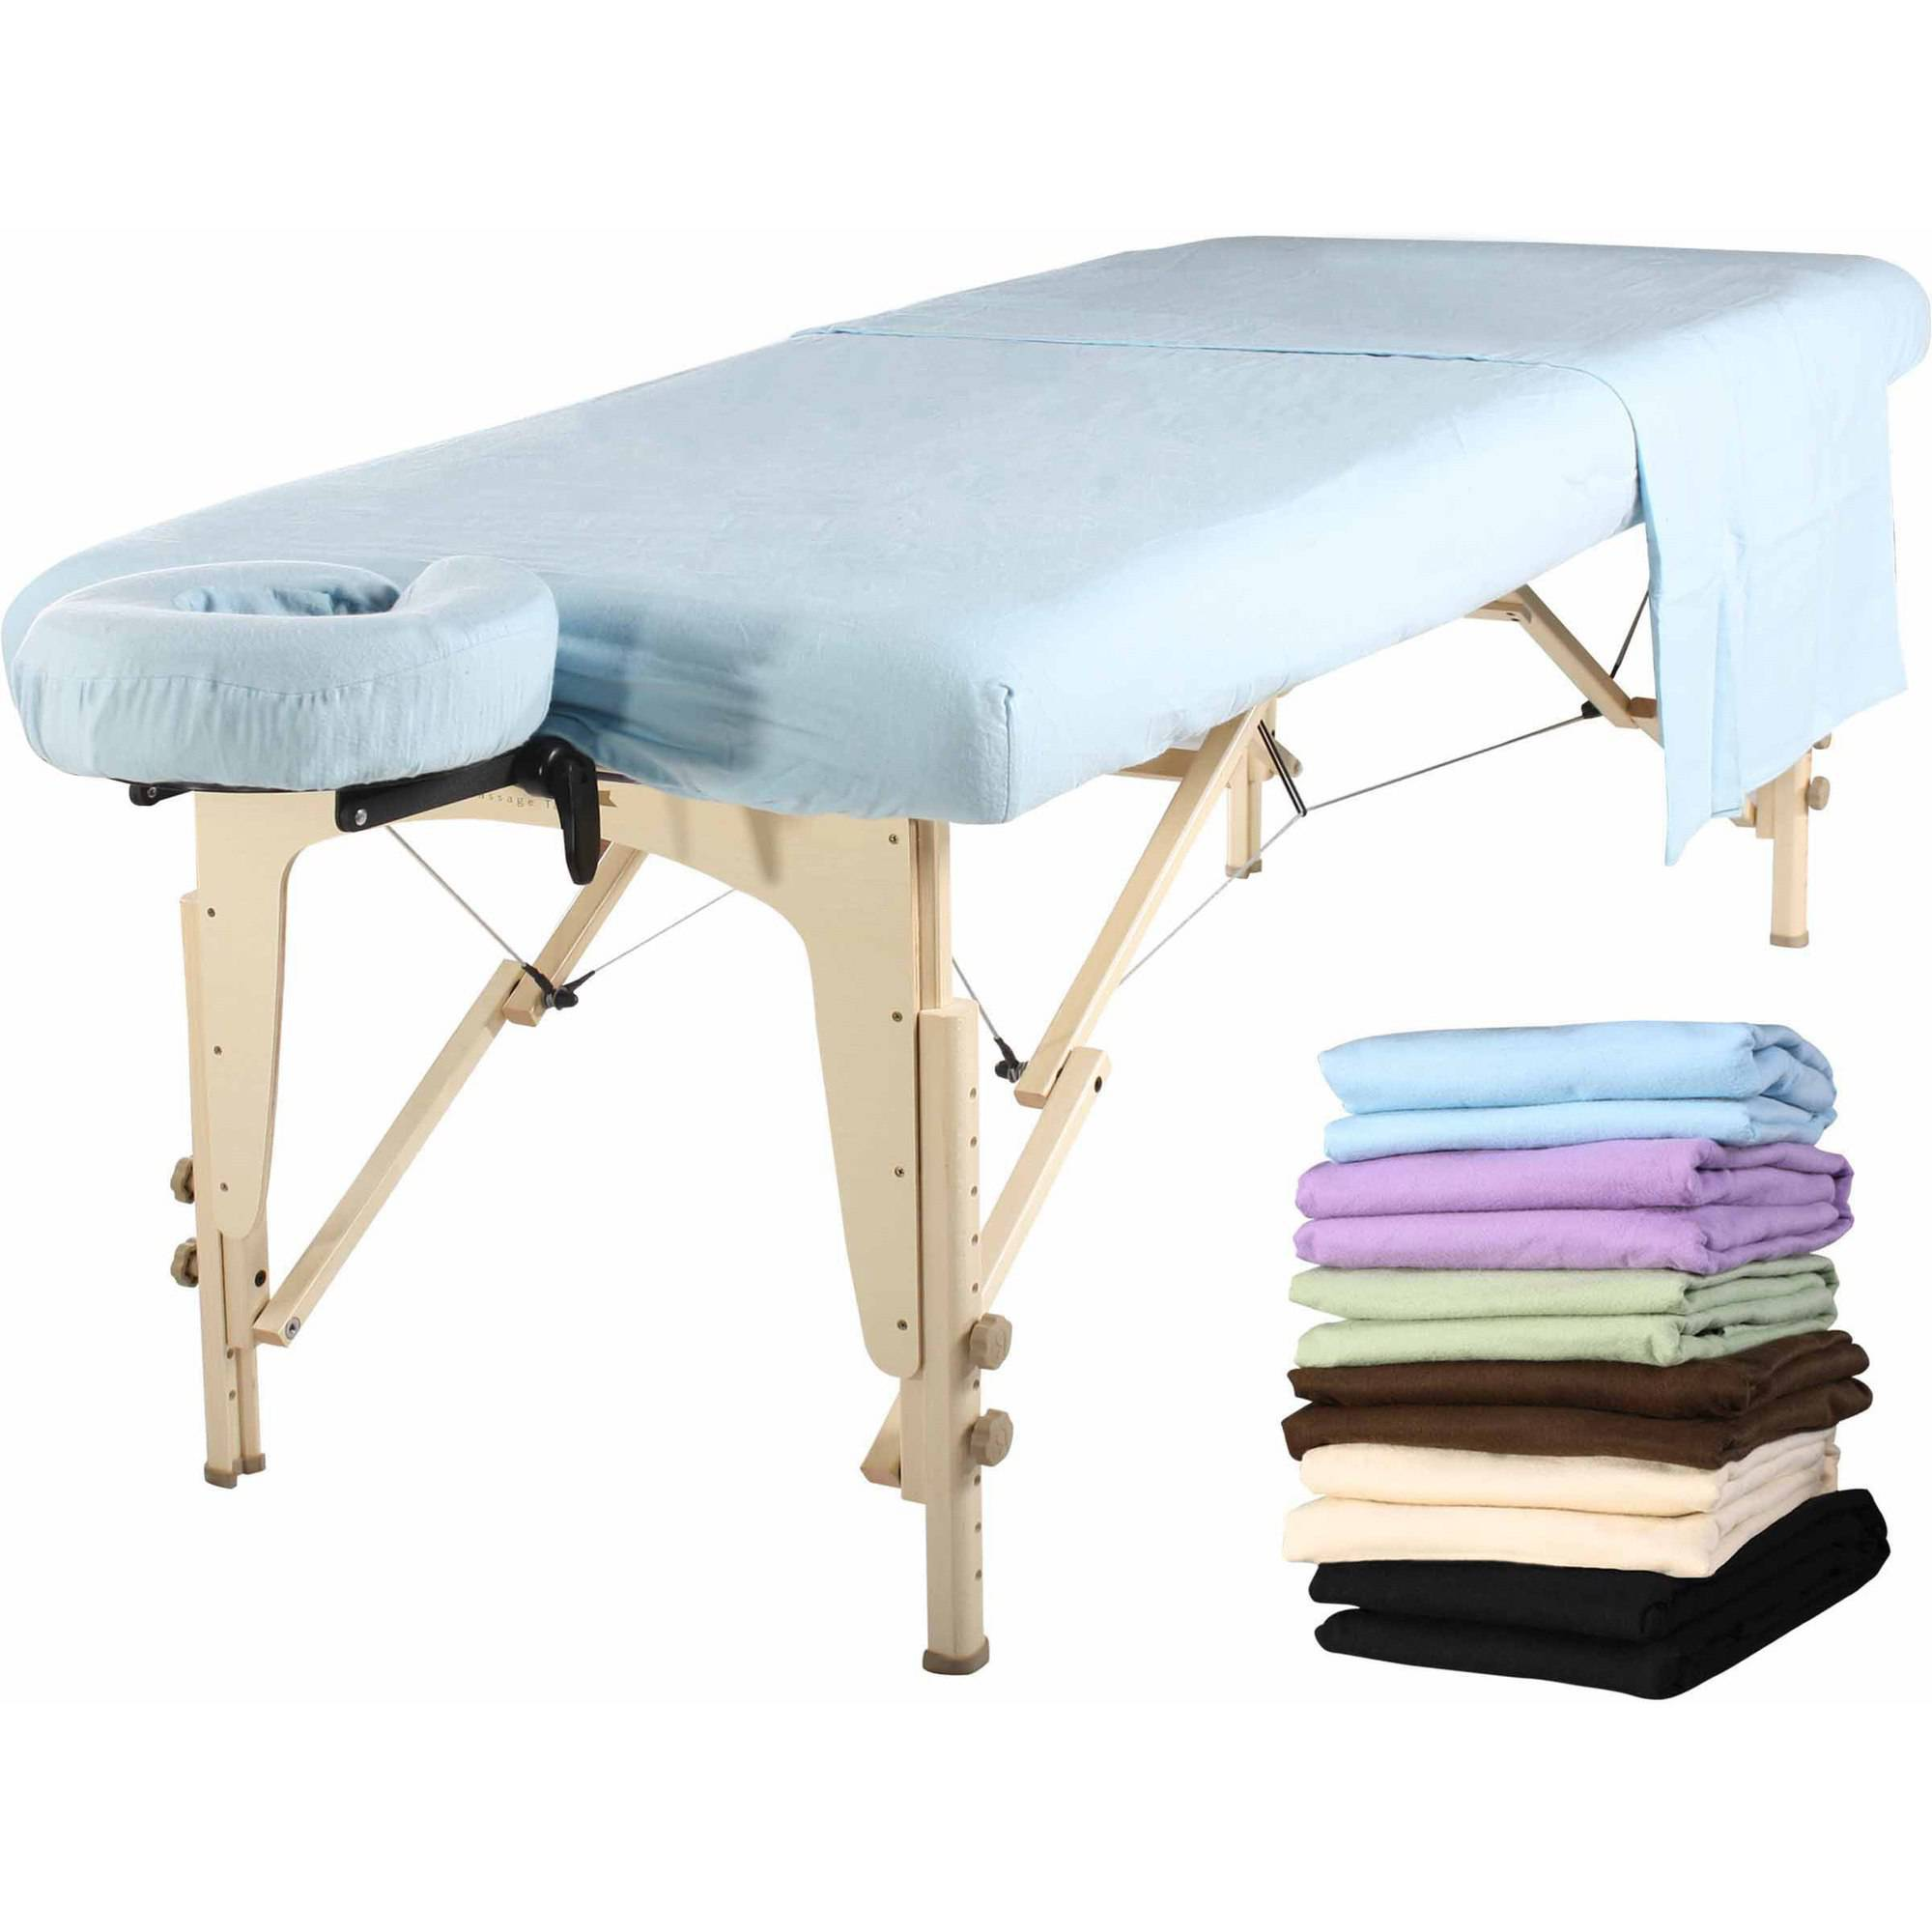 Mt Massage Universal Flannel Sheet Set 3-in-1 Table Cover, Face Cushion Cover, Table Sheet